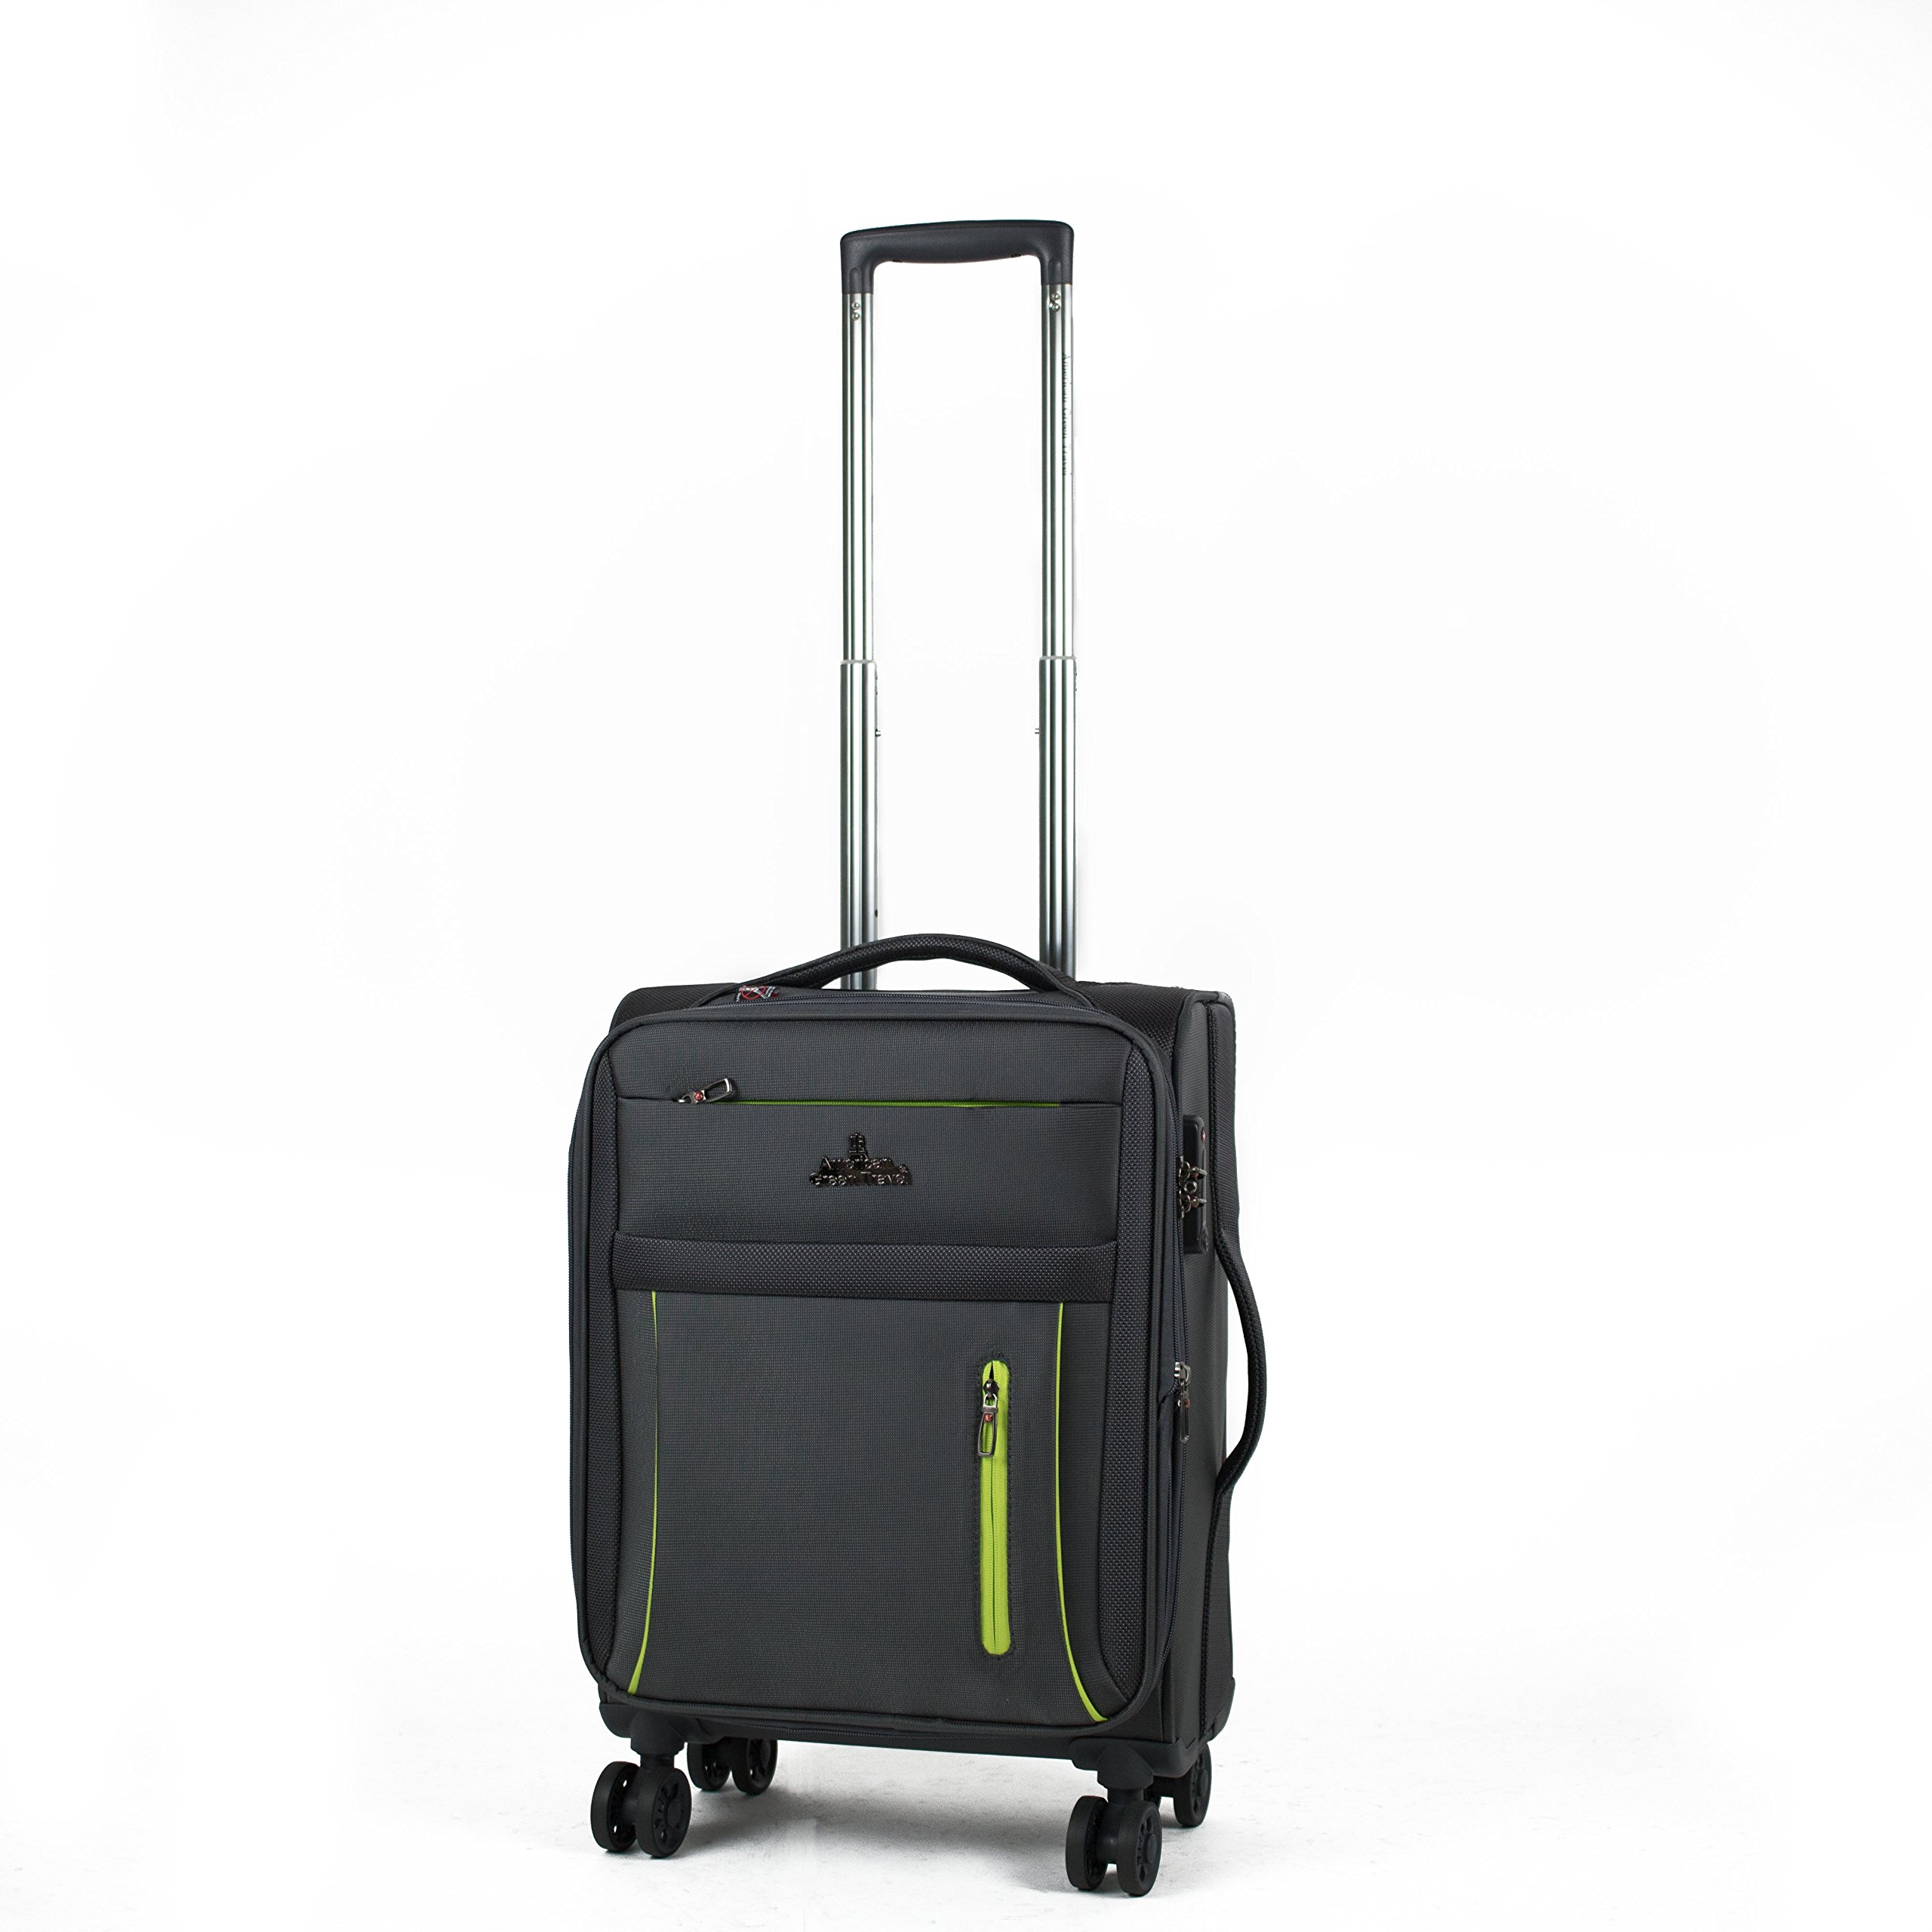 American Green Travel Carry-On Seteria Anti-Theft Luggage, Grey